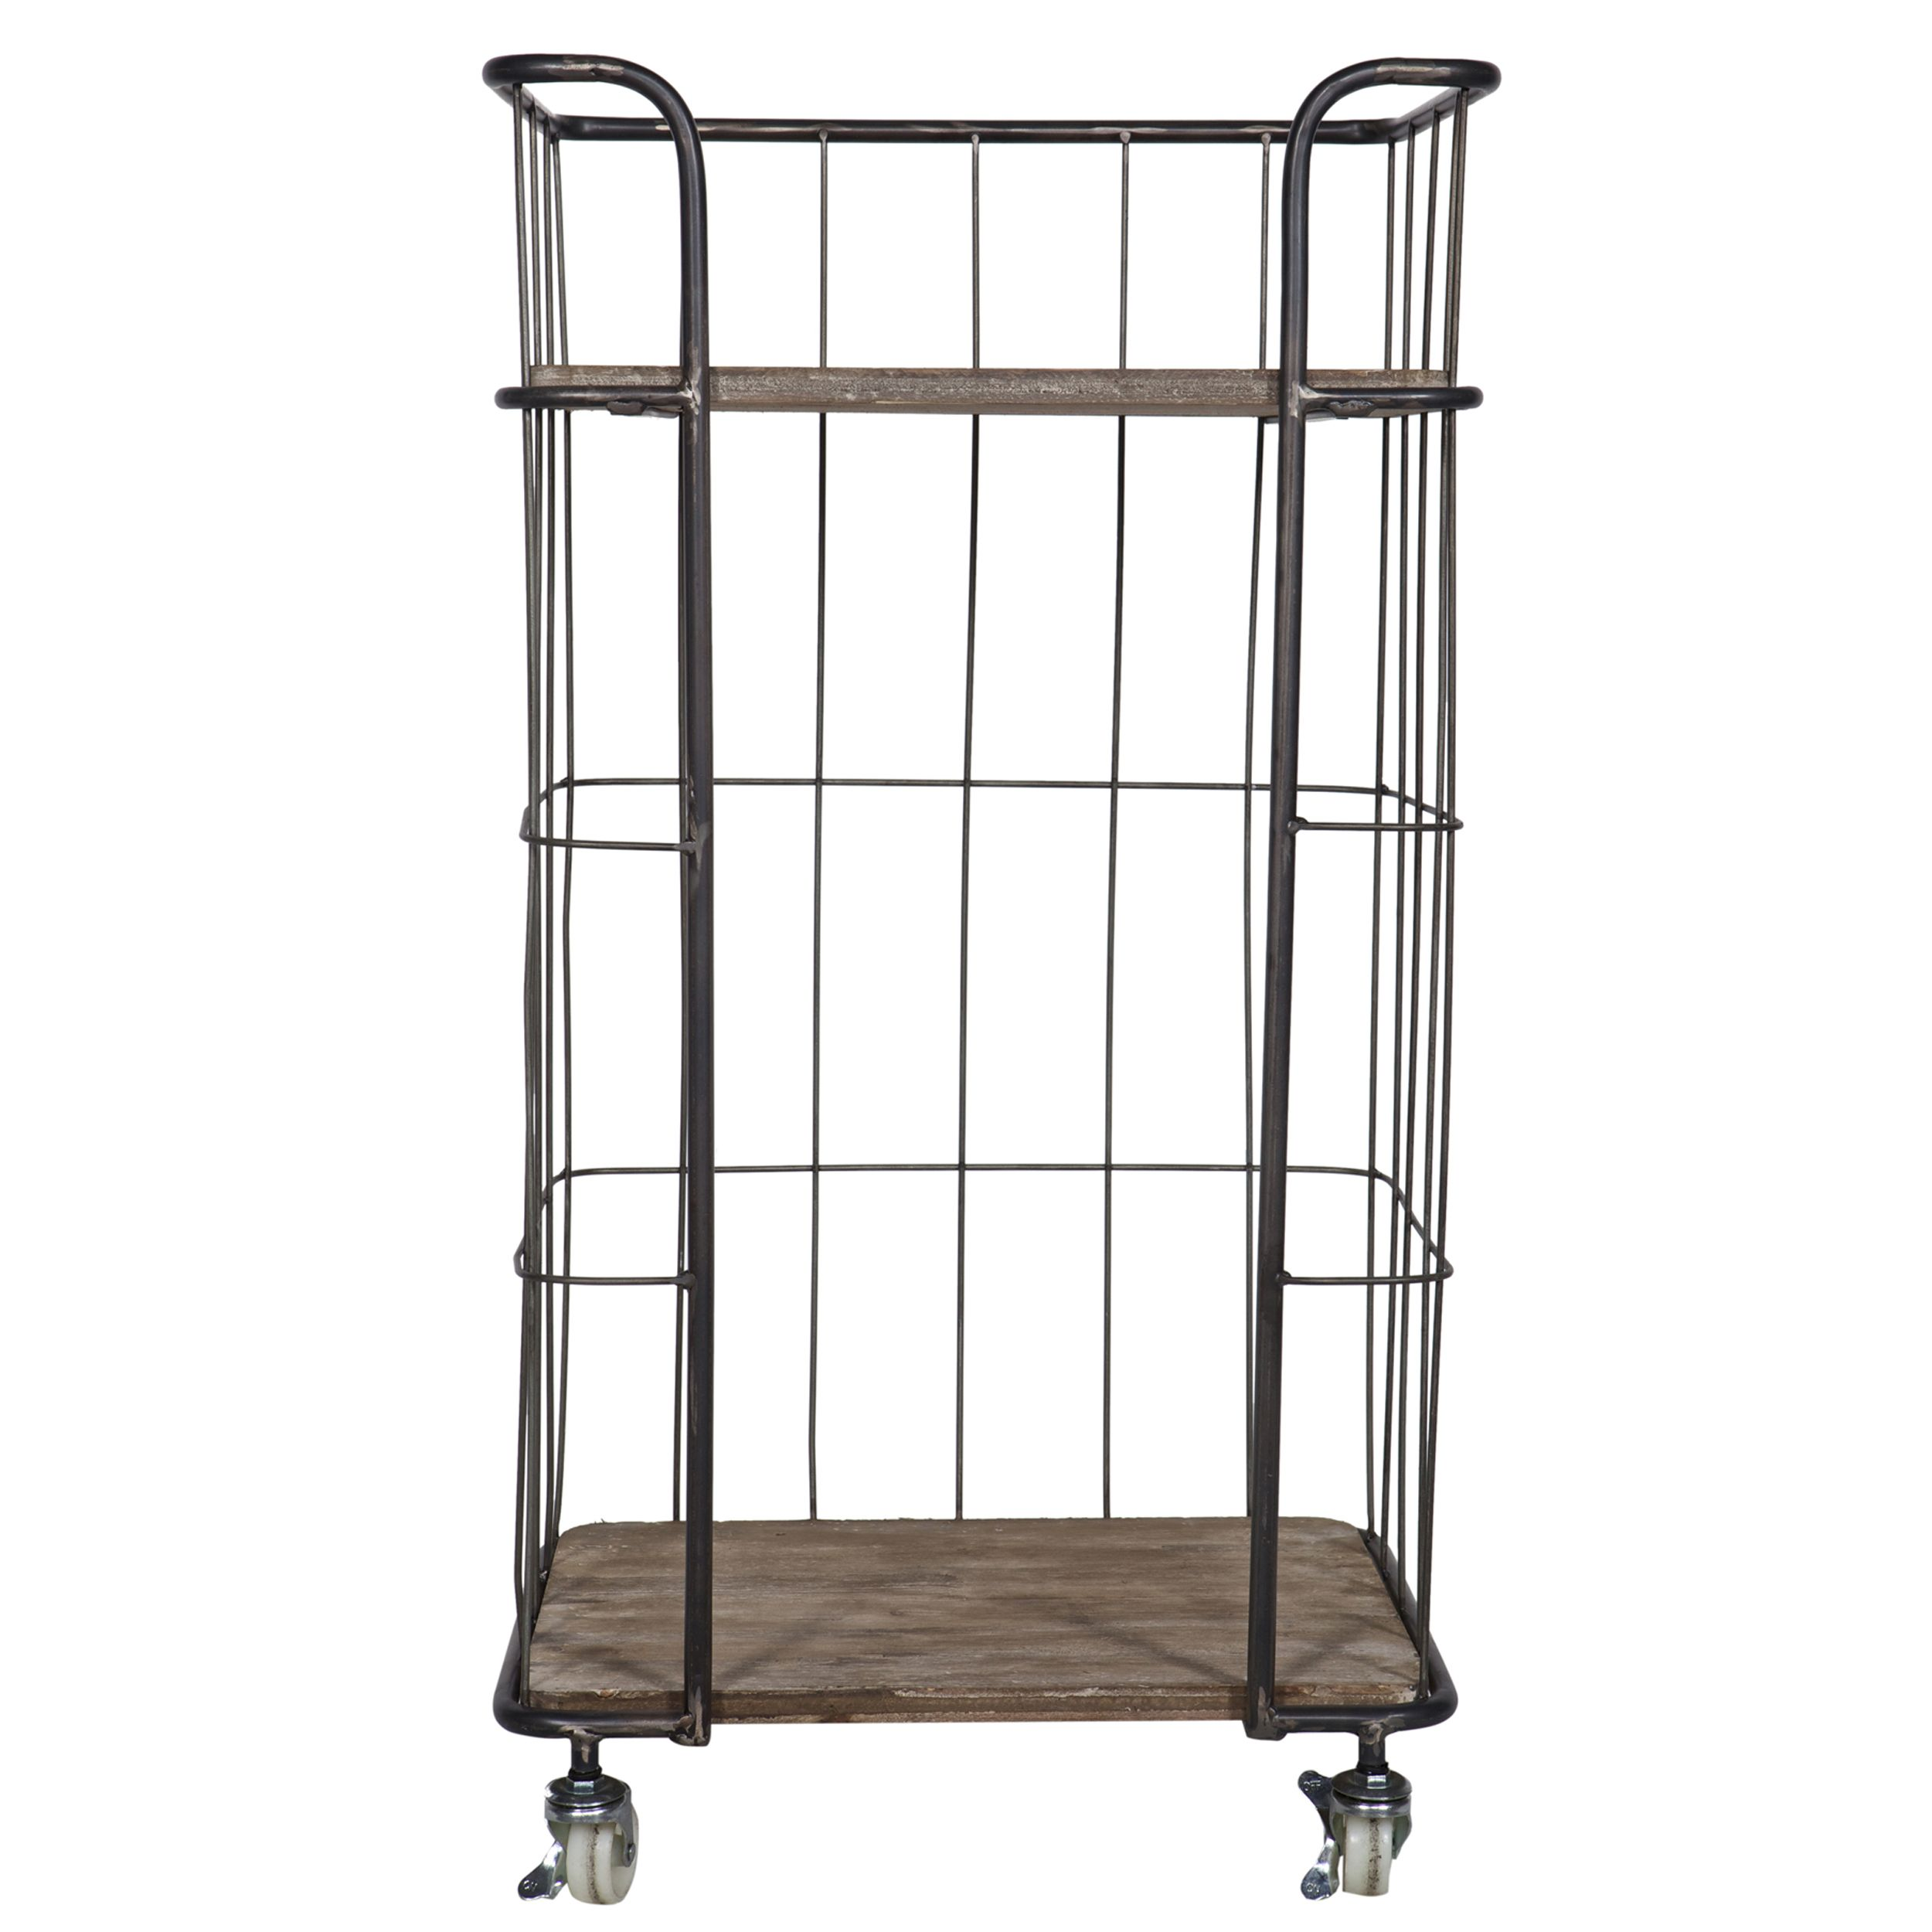 BePureHome Giro trolley small